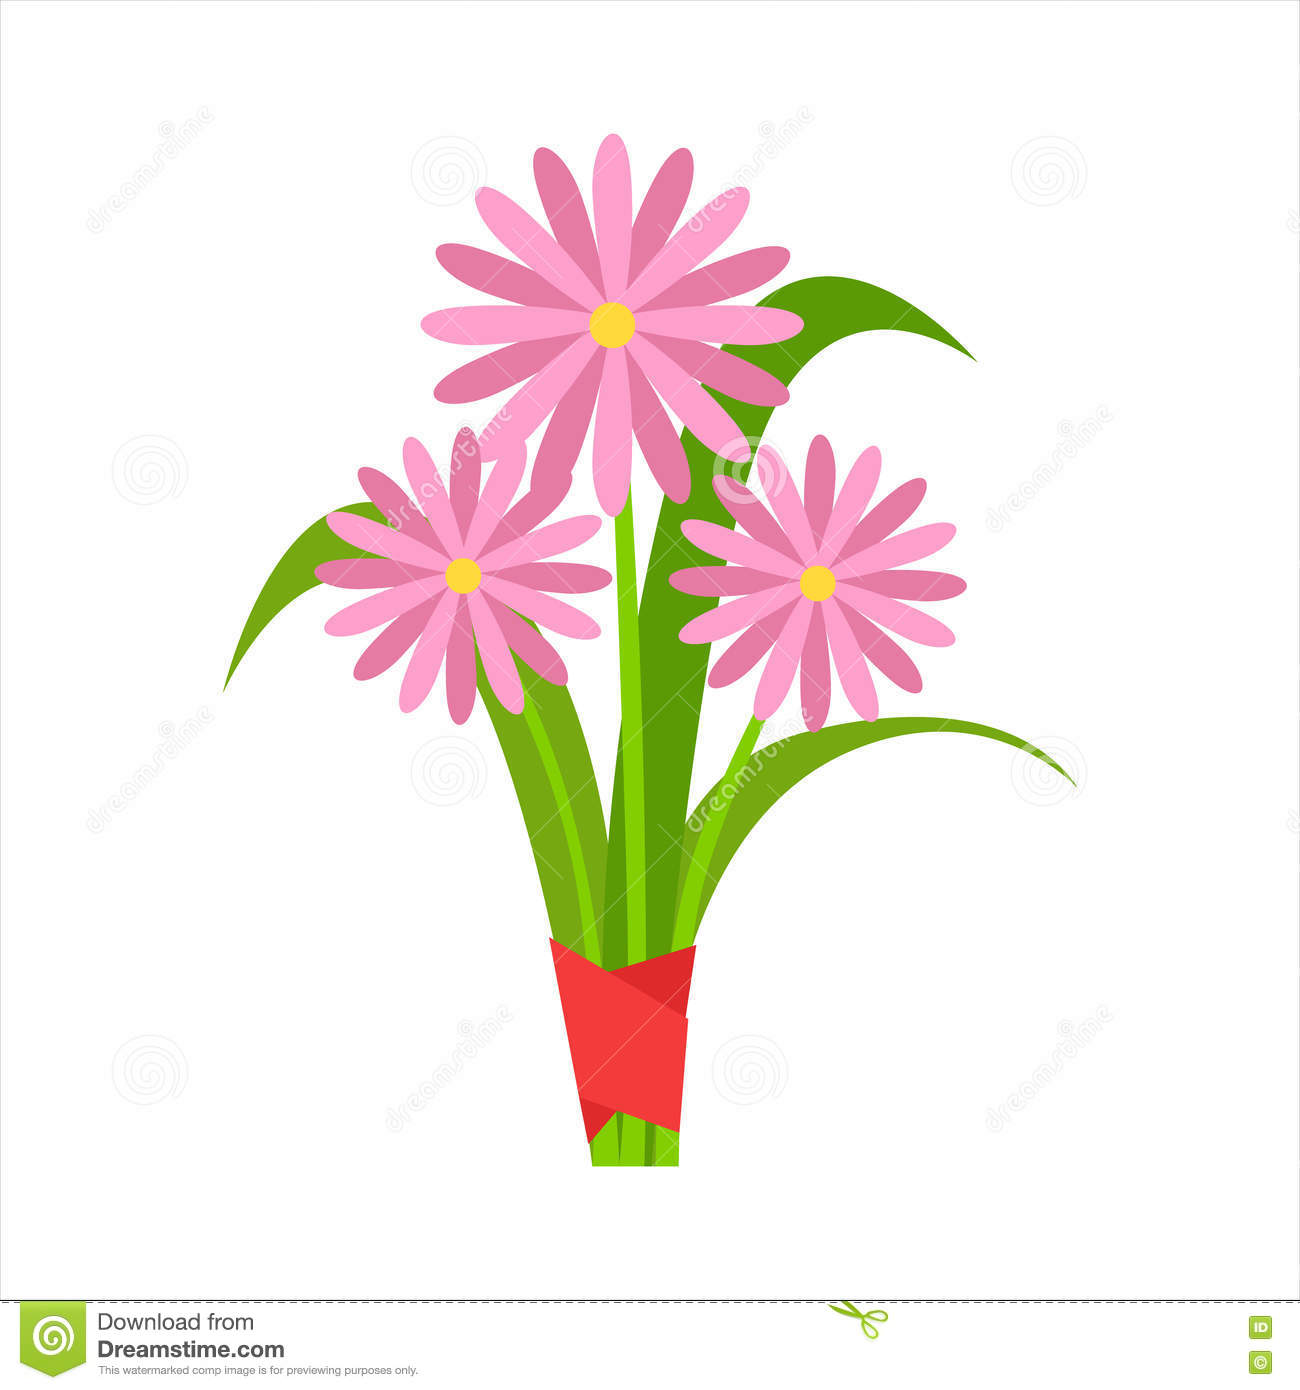 Pink Orangery Camomile Flower Bouquet Tied With Red Ribbon, Flower Shop Decorative Plants Assortment Item Cartoon Vector